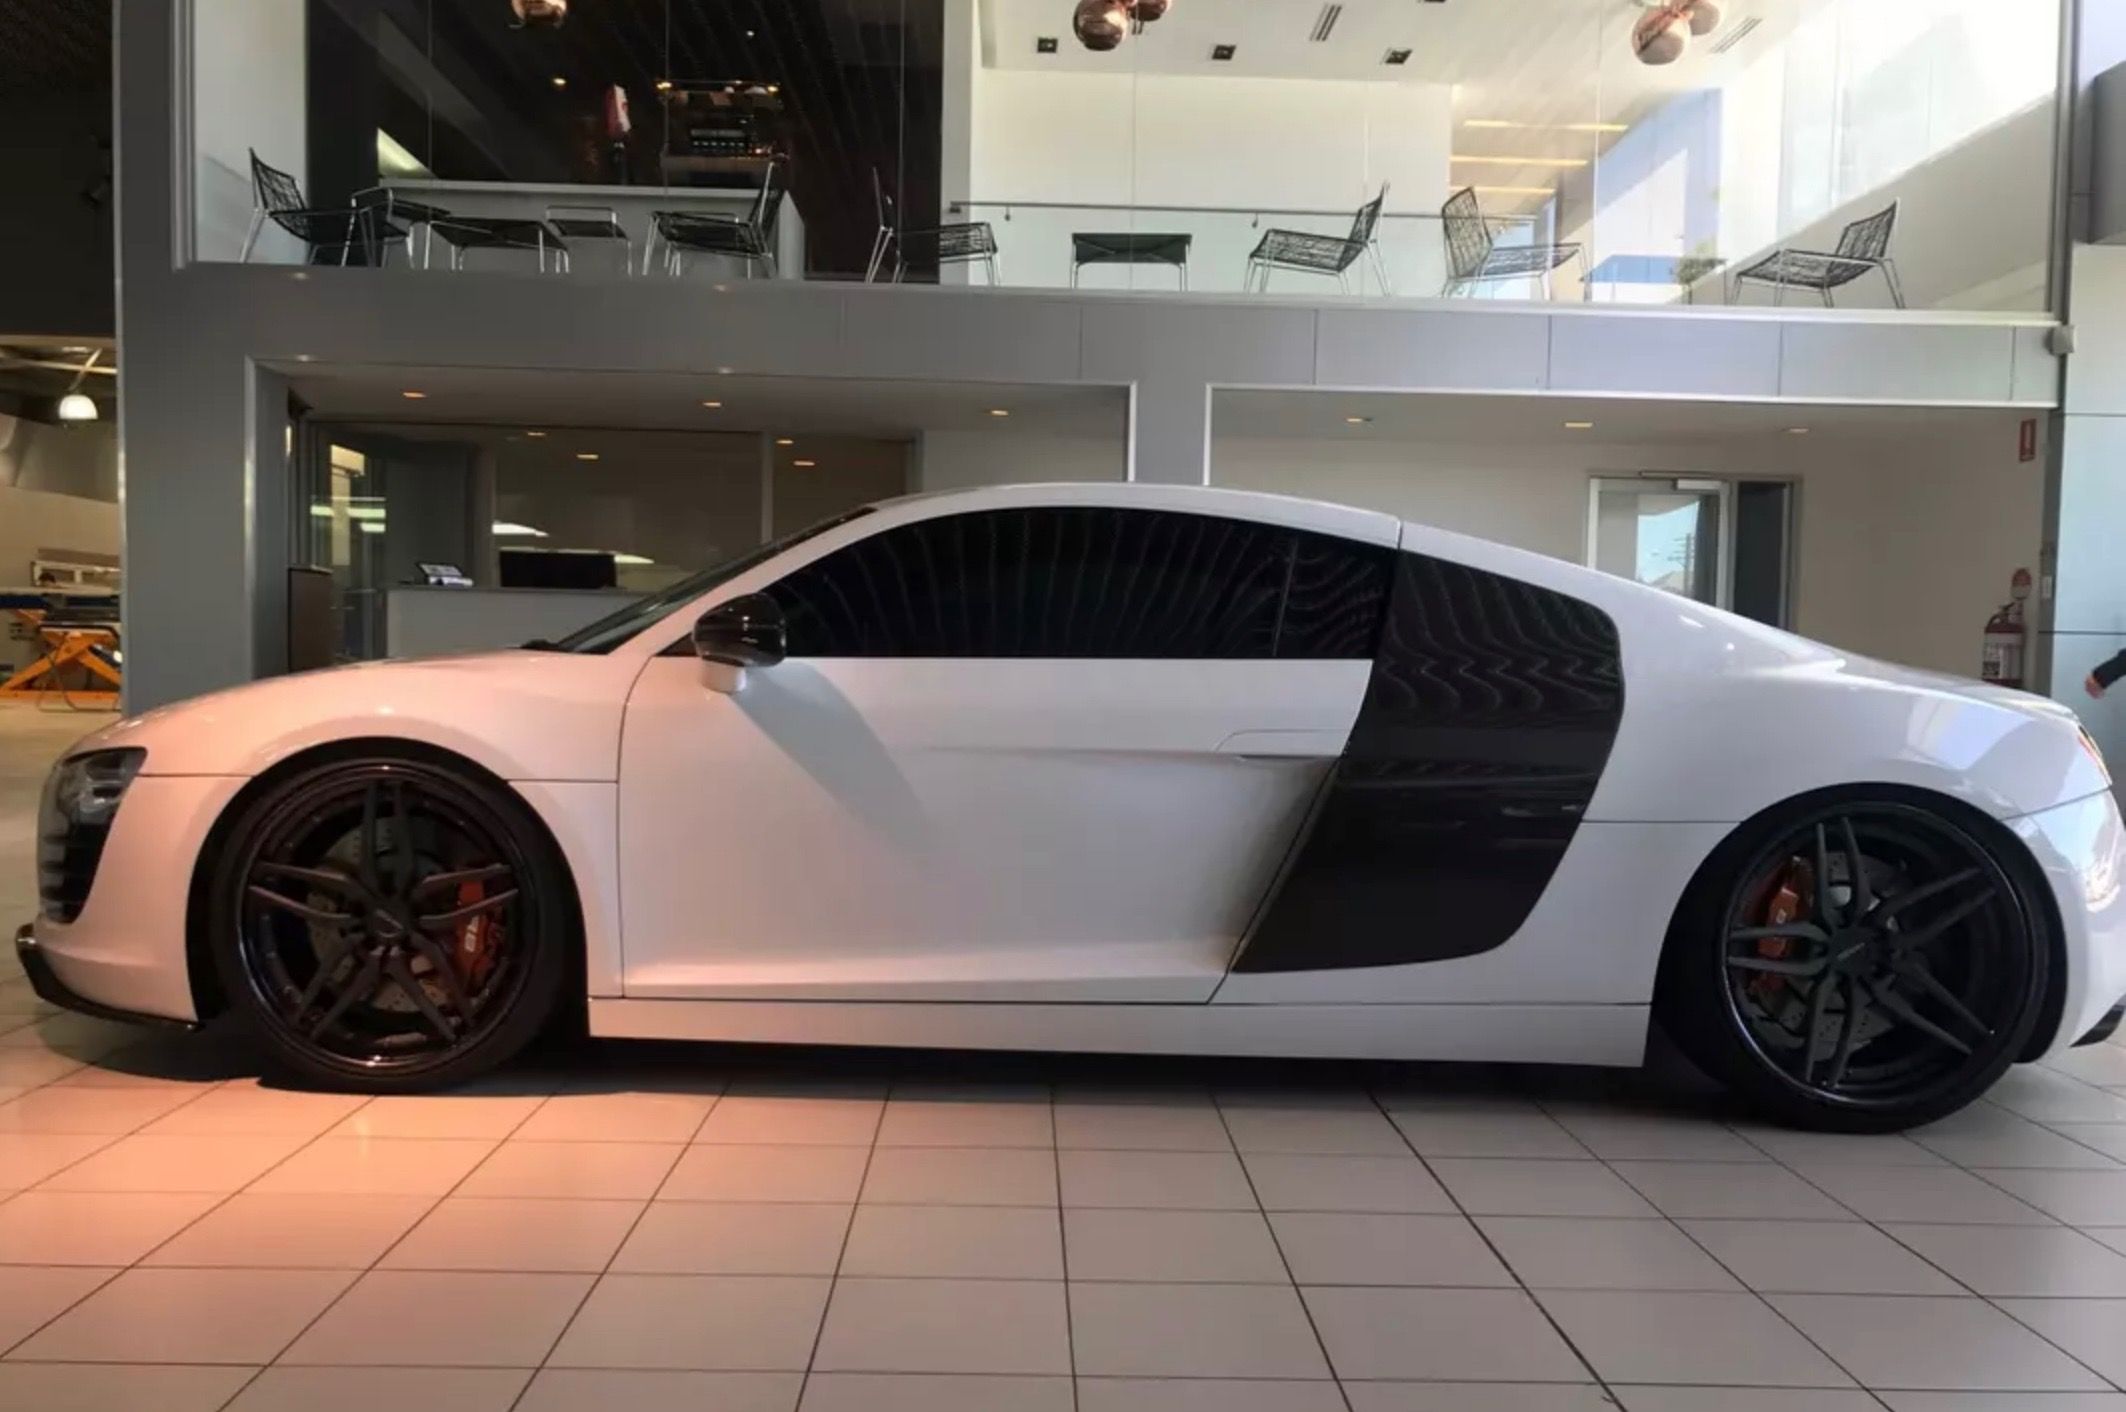 For Sale: 2012 Audi R8 with 600kW twin-turbo conversion